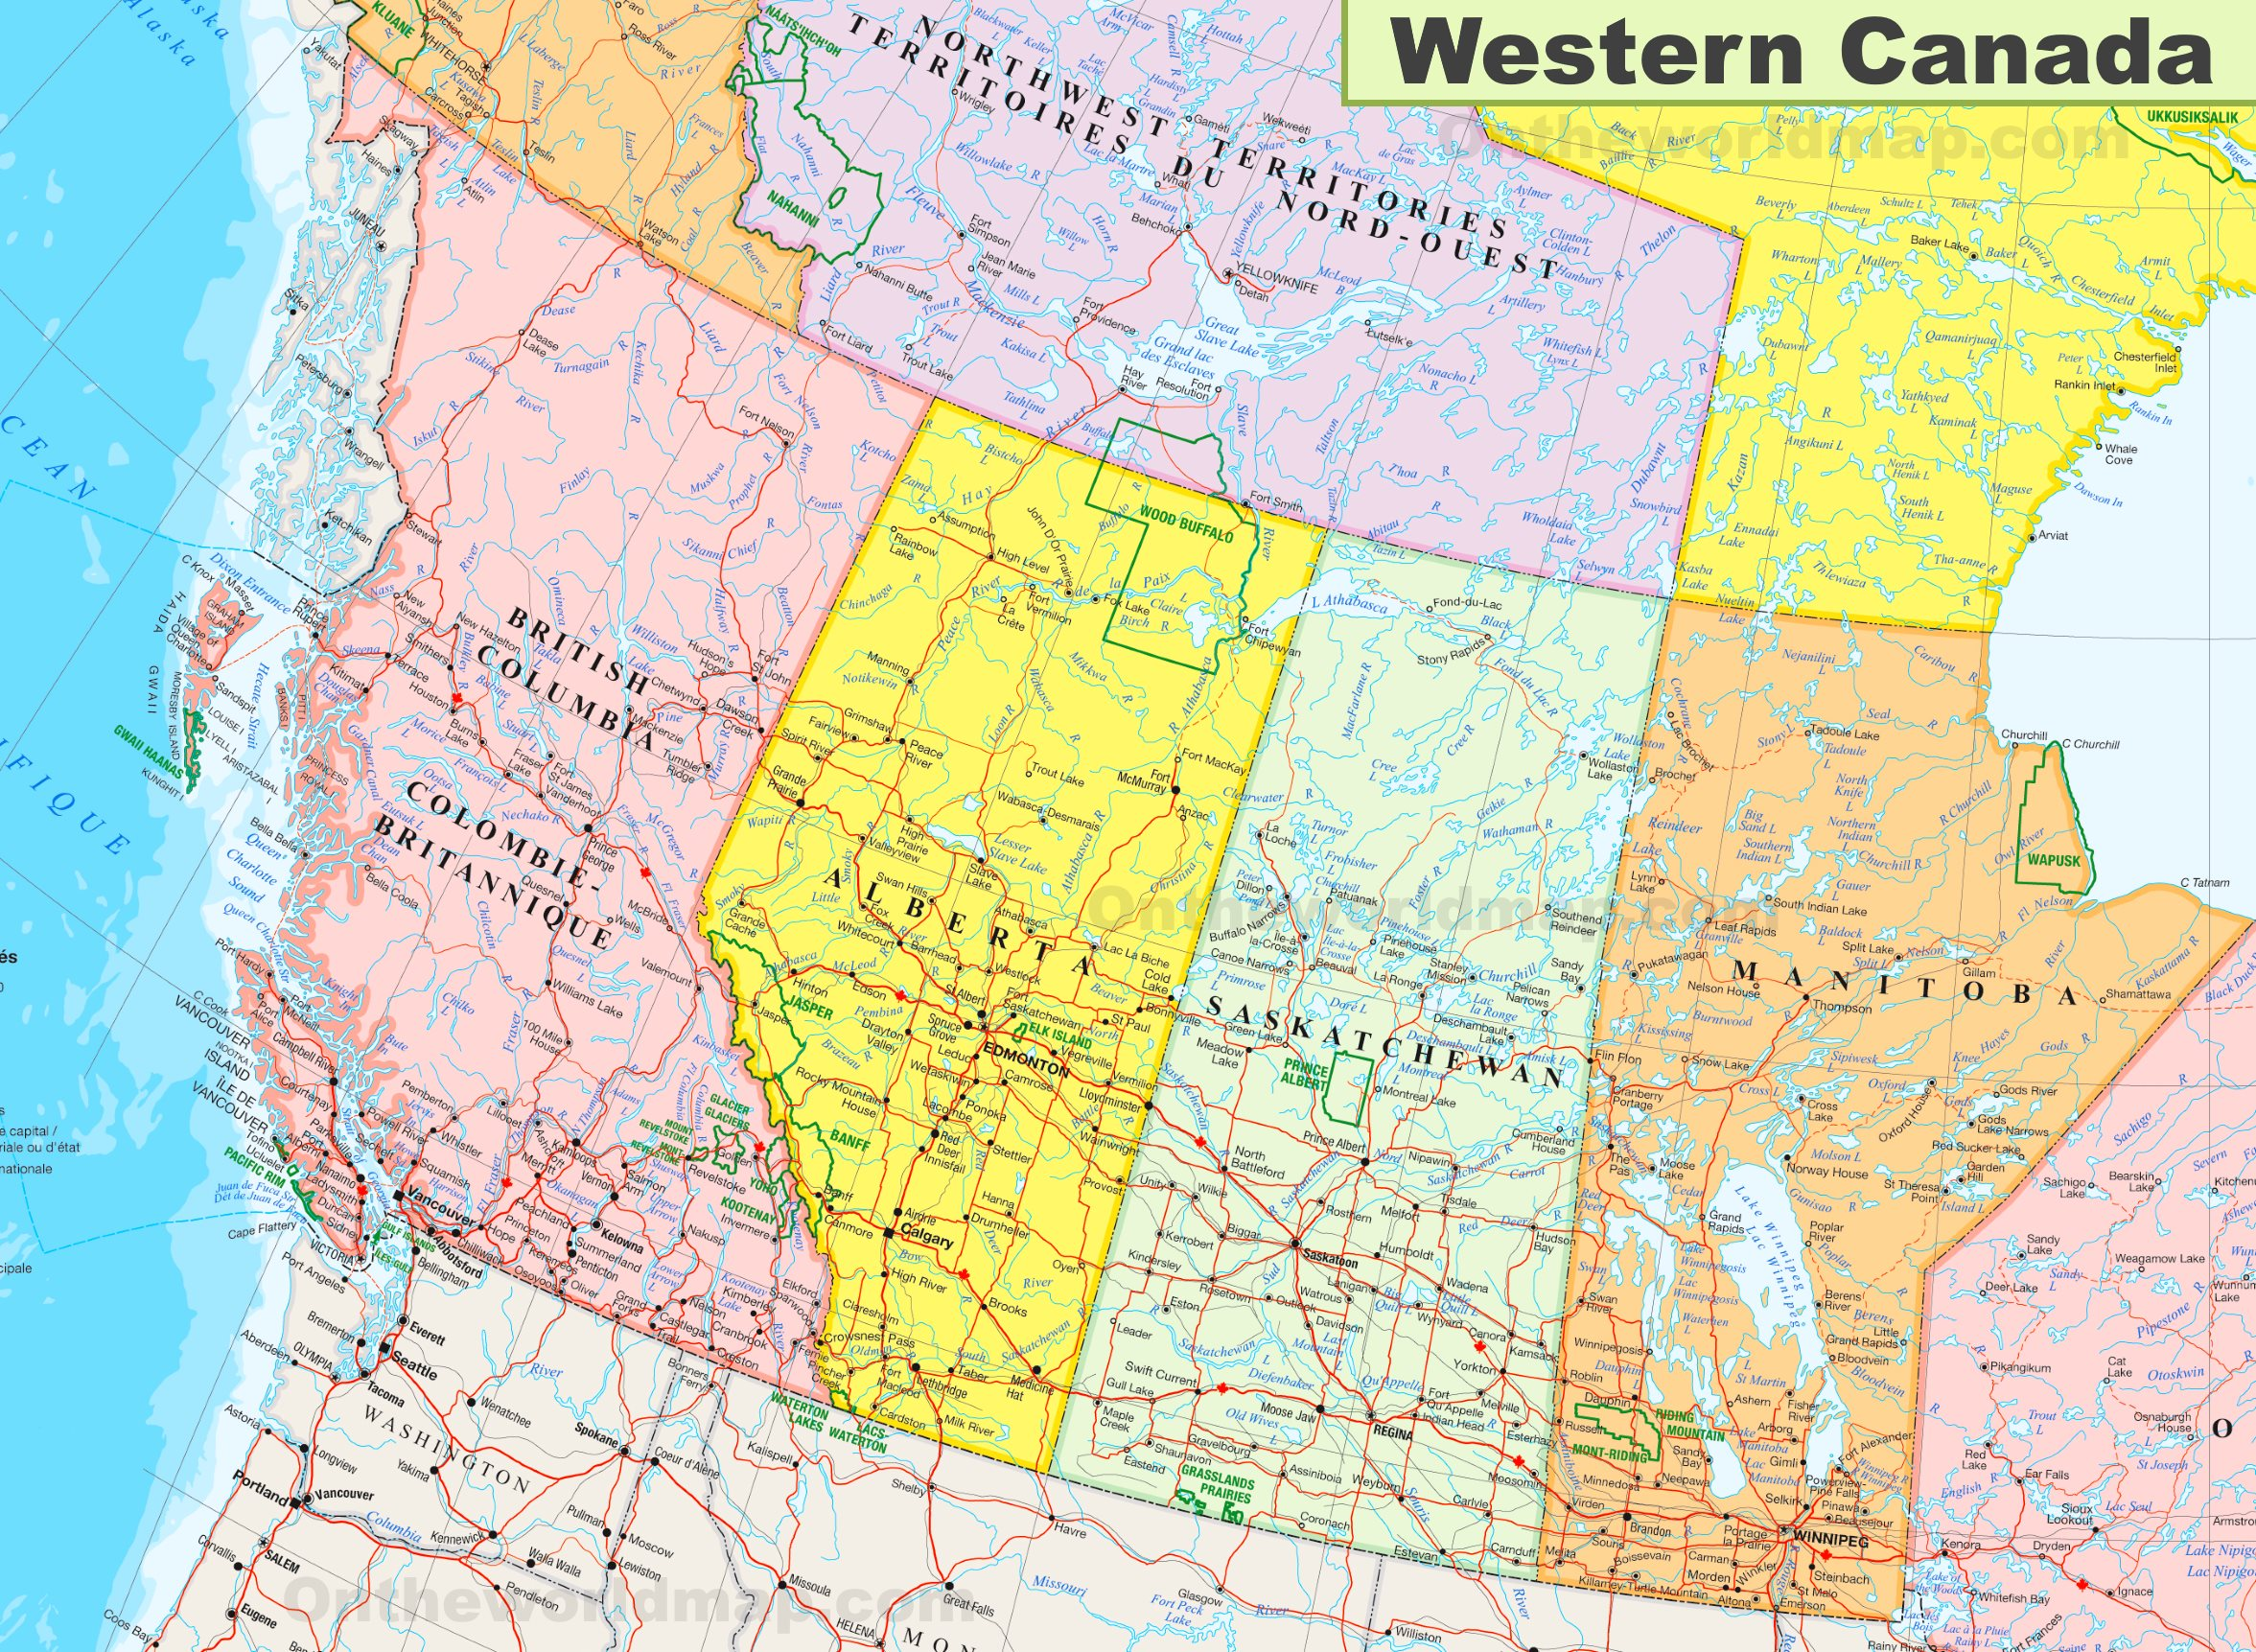 Map of Western Canada Image Of Western Canada Map on canadian prairies, map of canada provinces, western coast of canada, central canada, map of chinese canada, map of idaho, map of ontario canada, map of canada showing cities, eastern canada, northern canada, alberta canada, map of alberta, map western usa and canada, map of british columbia, map of northeast coast of canada, location of ottawa canada, online map western canada, map of north america, atlantic canada, map of us and canada, map of jamaica, map us and canada map, map of eastern canada, map of manitoba, map of country canada, british columbia,